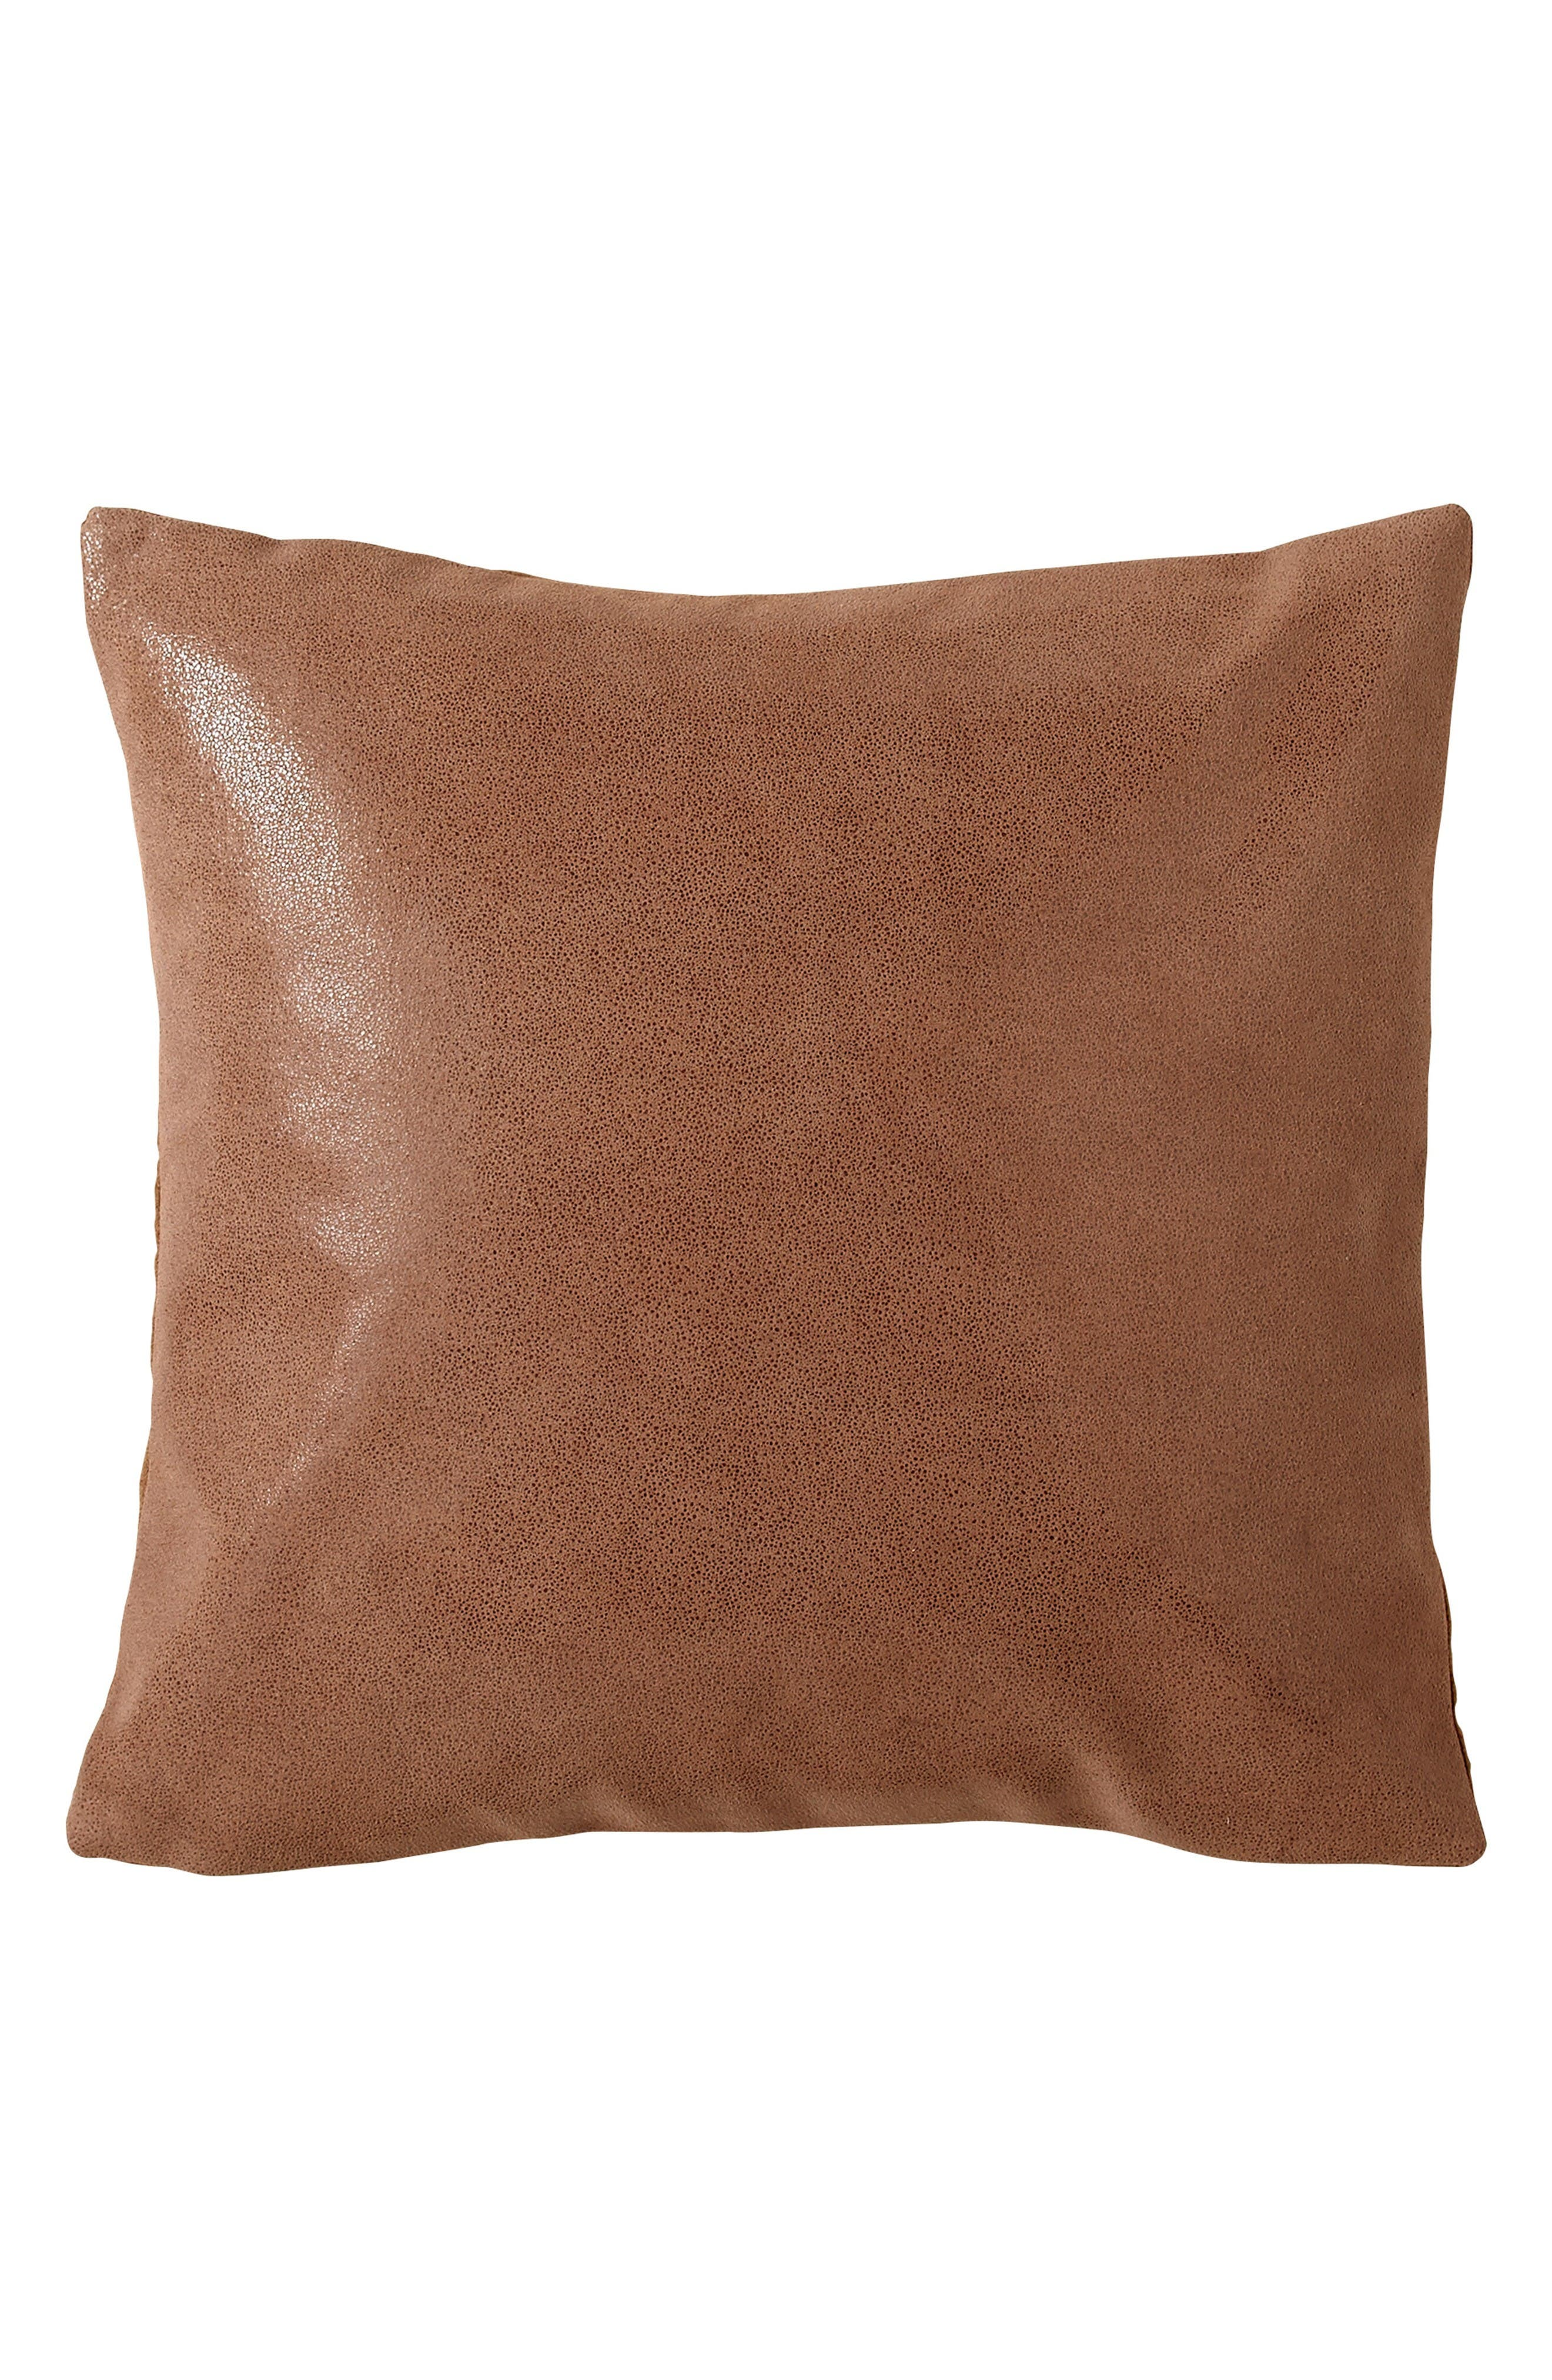 Donna Karan Home Collection Awakening Lacquer Printed Leather Accent Pillow,                         Main,                         color, Copper